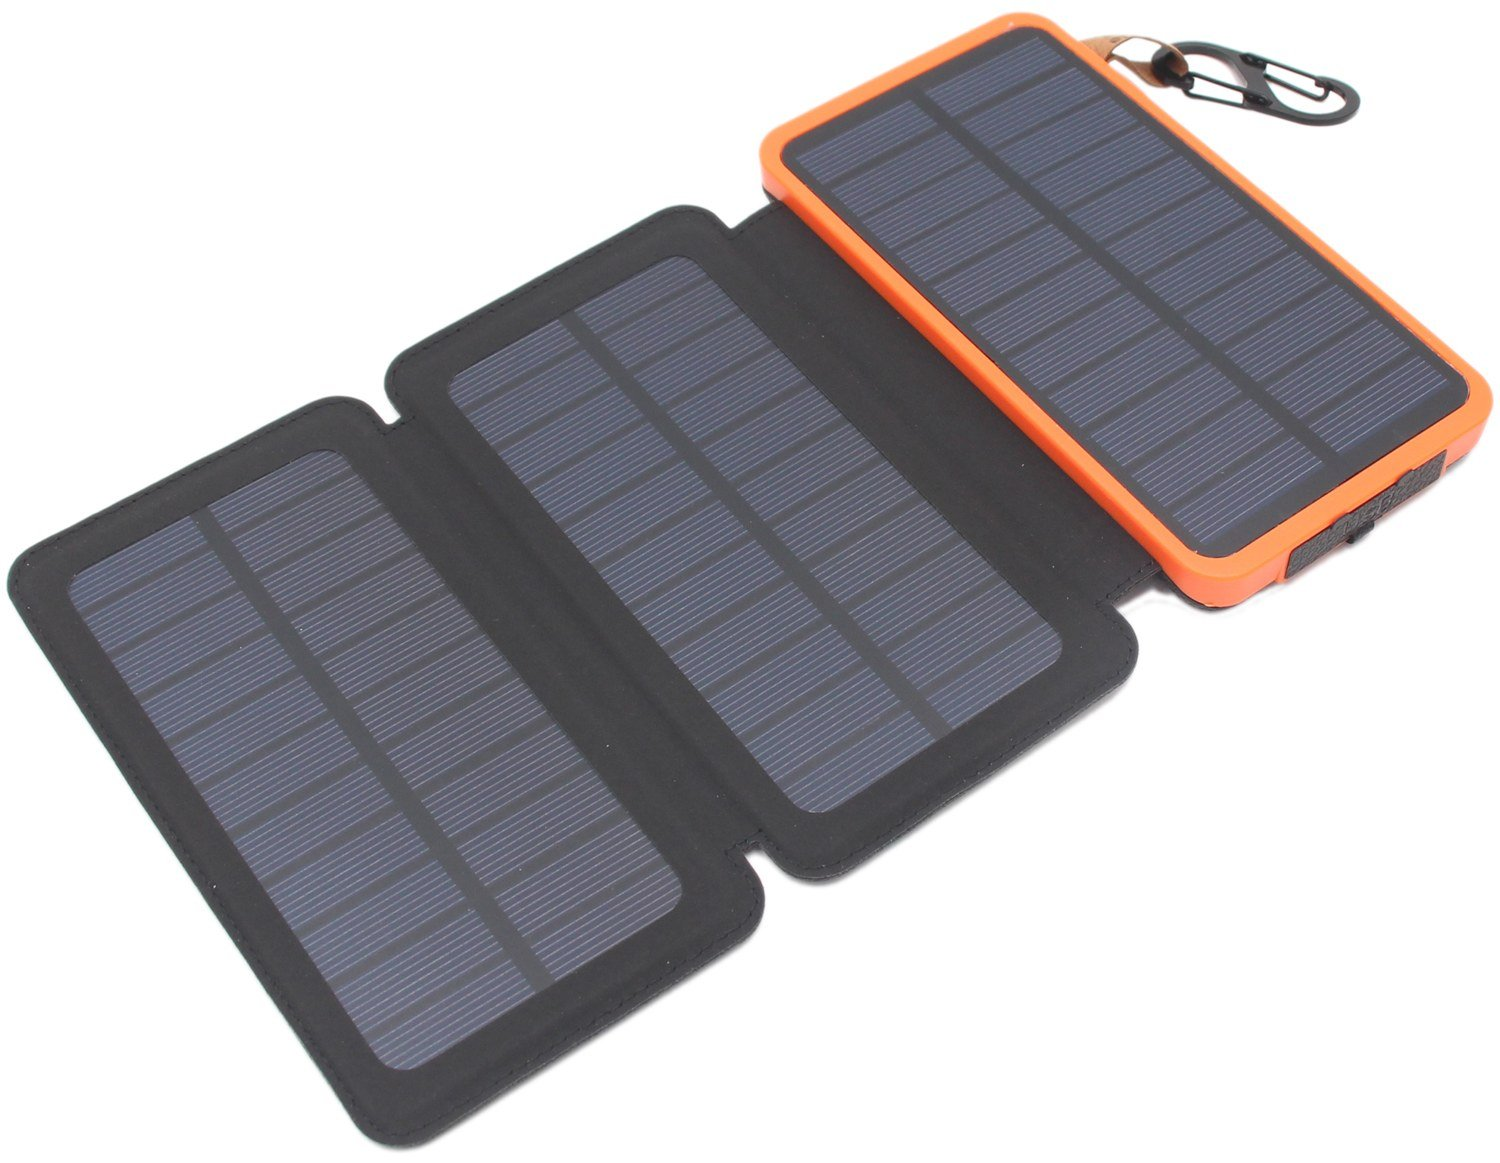 low priced a1971 2c74f Itscool Solar USB Charger Power Bank 12000mAh, 9 LED, 3 Solar Panels with 2  USB for Smartphones and All 5V Devices (3 Panels Orange)